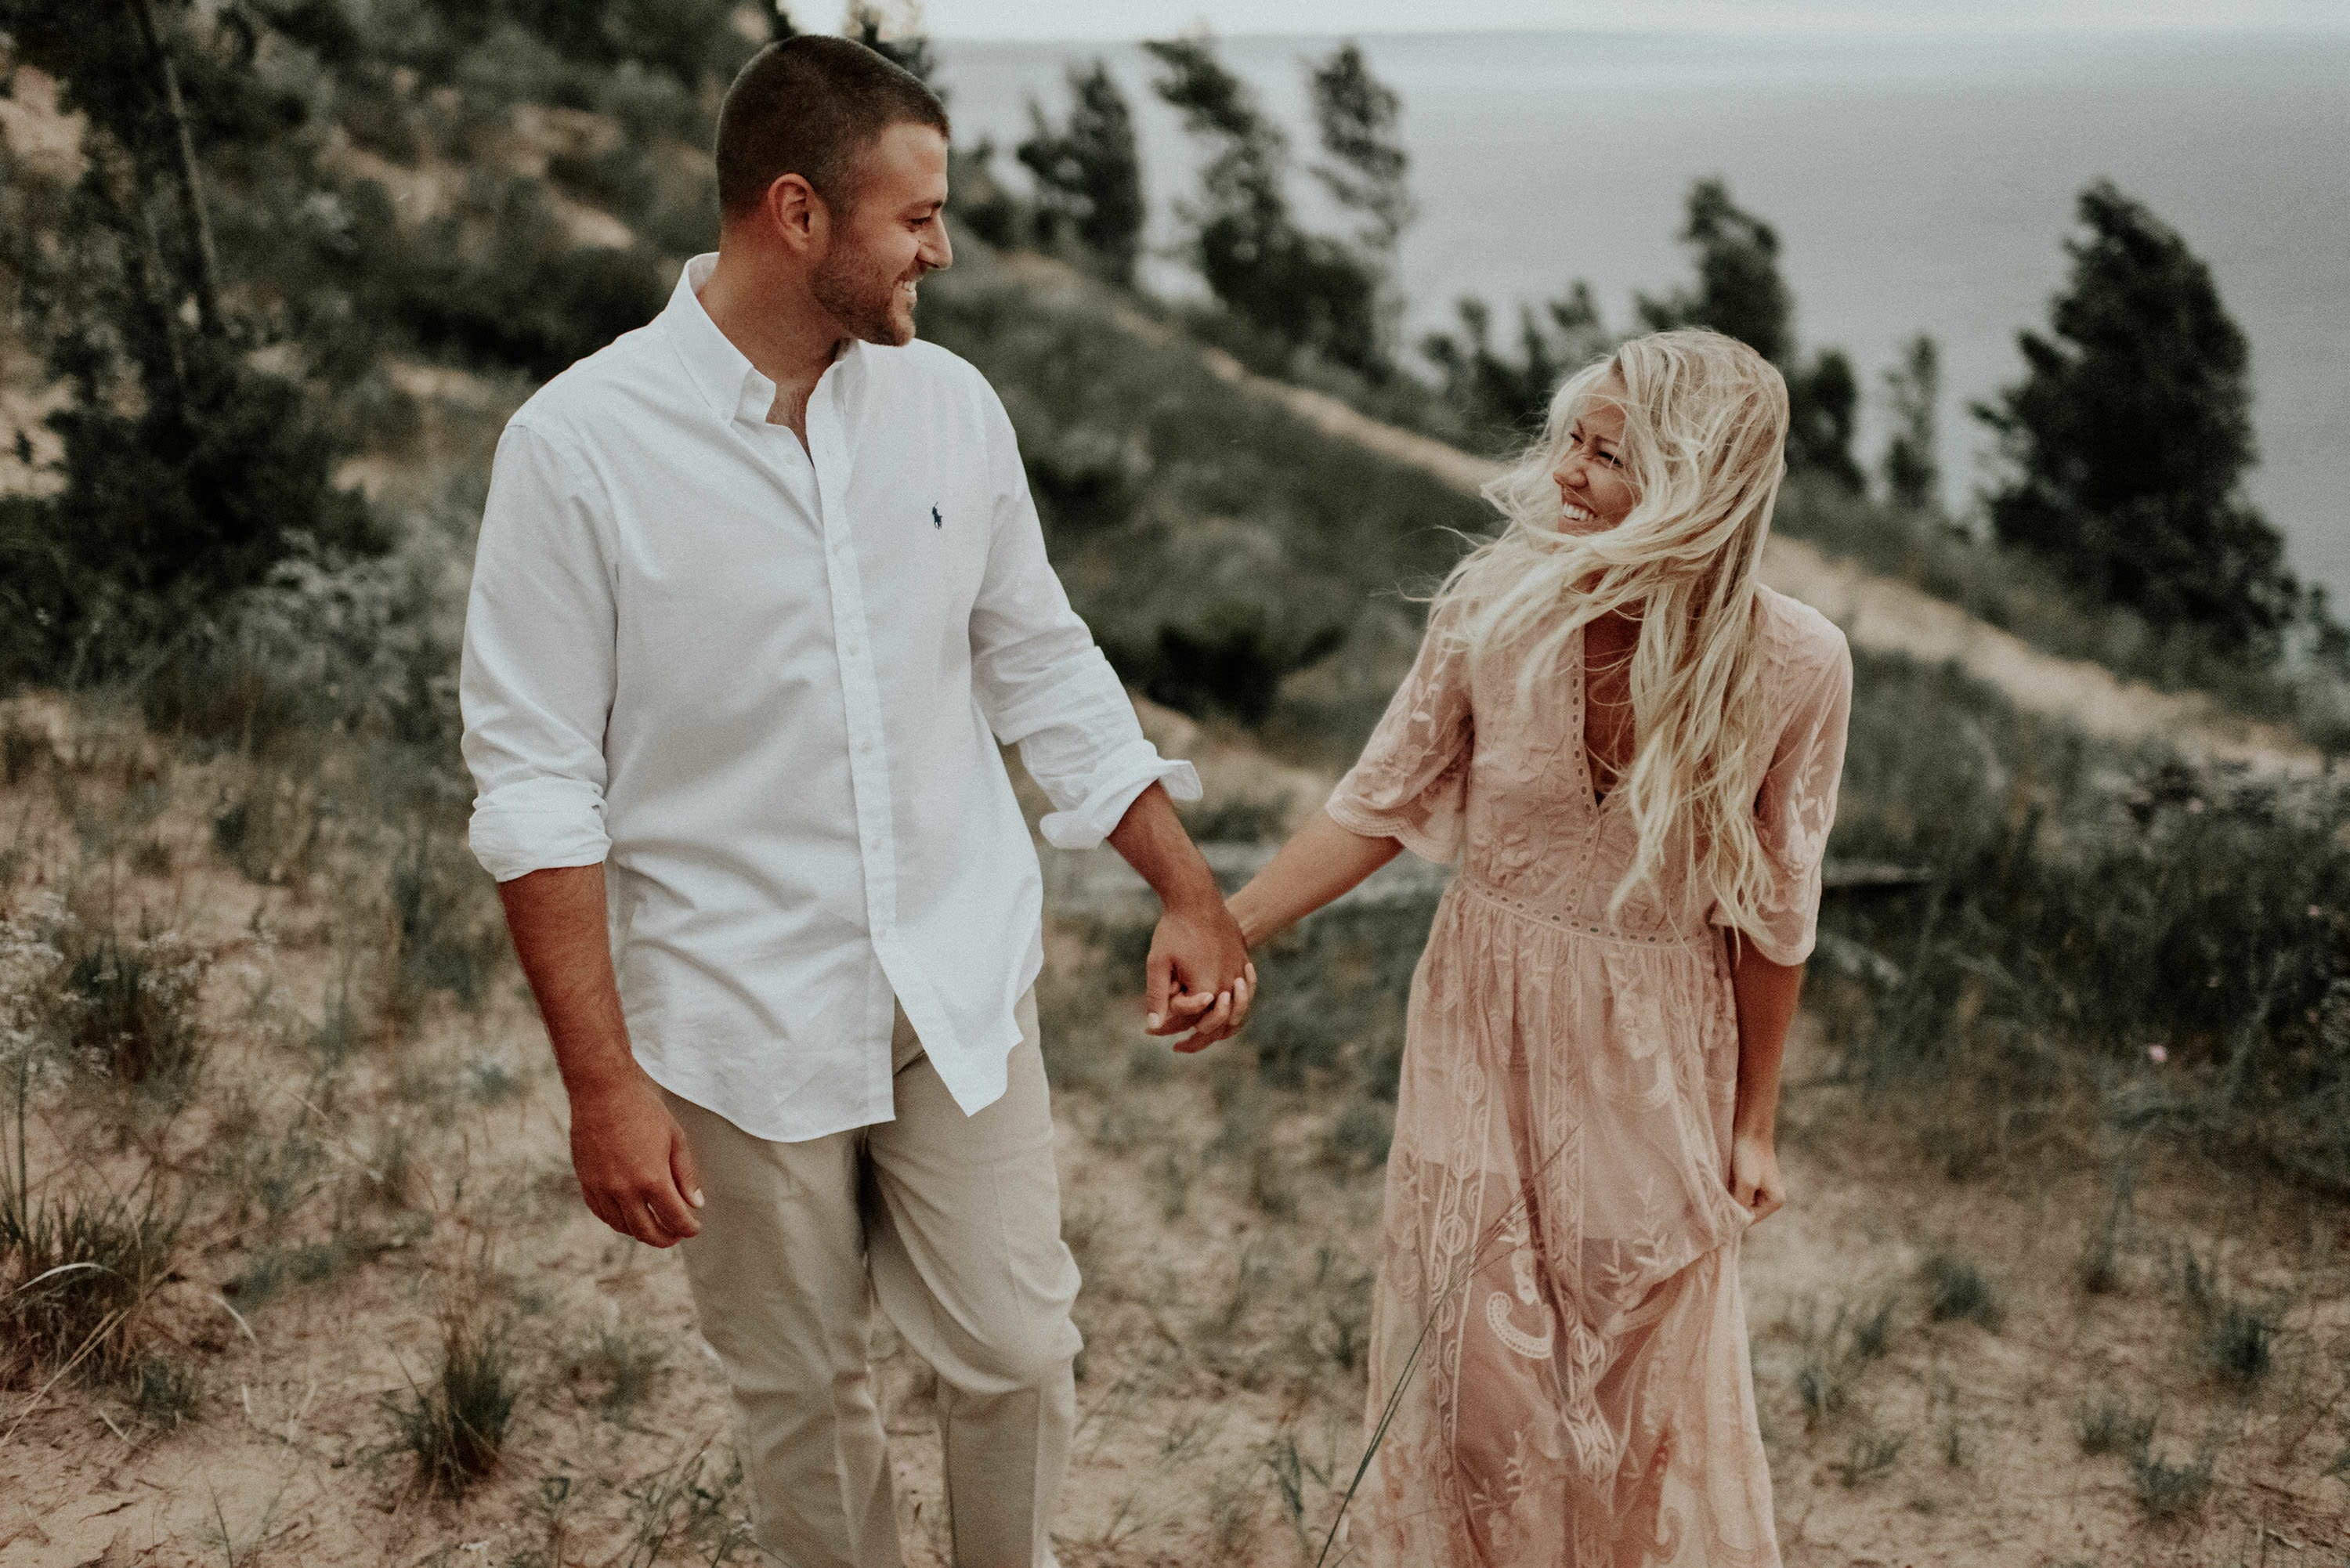 Windy, Empire Bluffs, Engagement Session, Josh Rexford